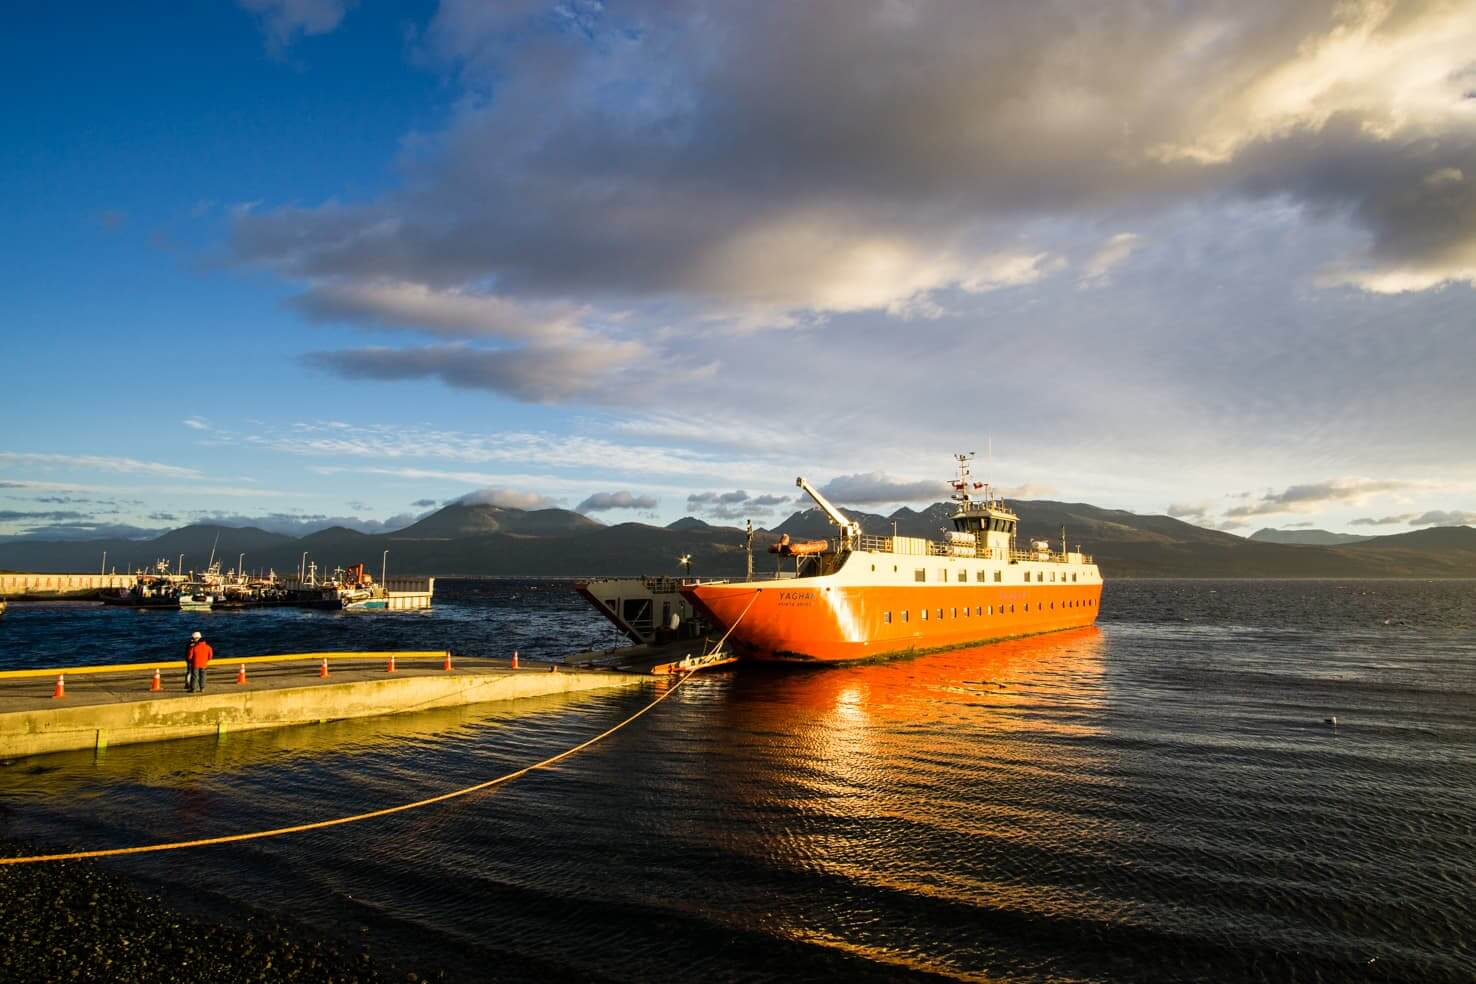 Puerto Williams, Chile - southernmost city in the world - Yaghan ferry